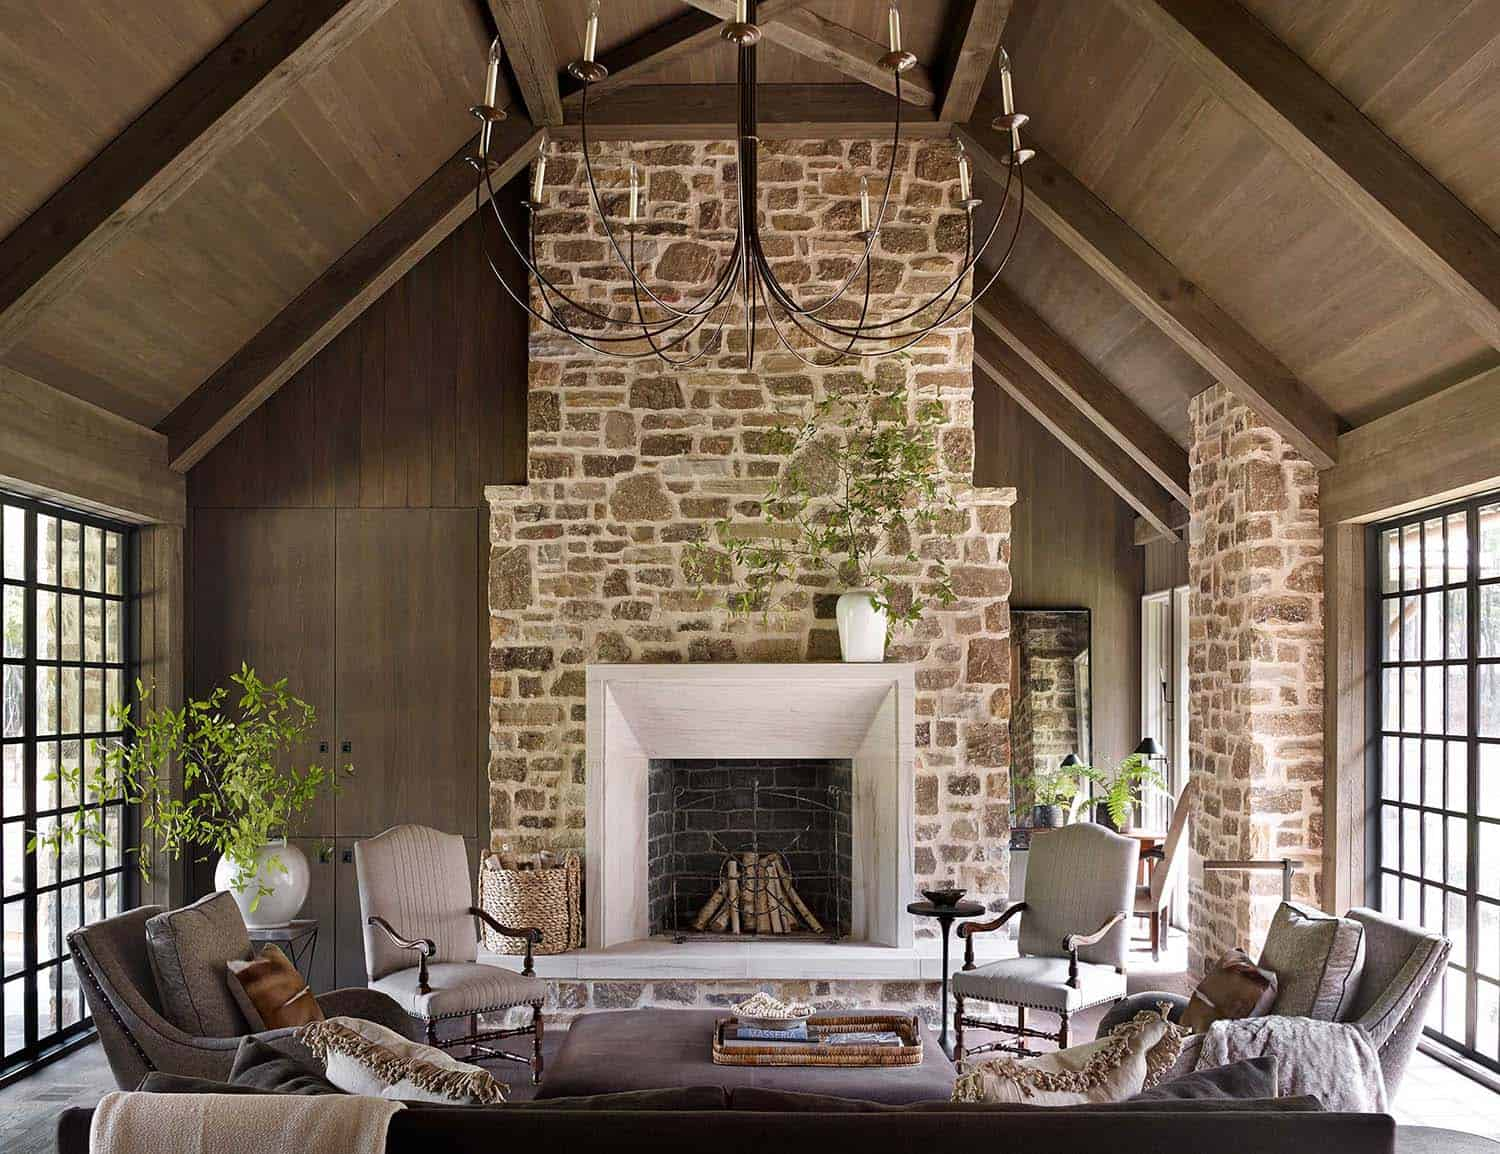 Shingle Style Farmhouse-Jeffrey Dungan Architects-02-1 Kindesign